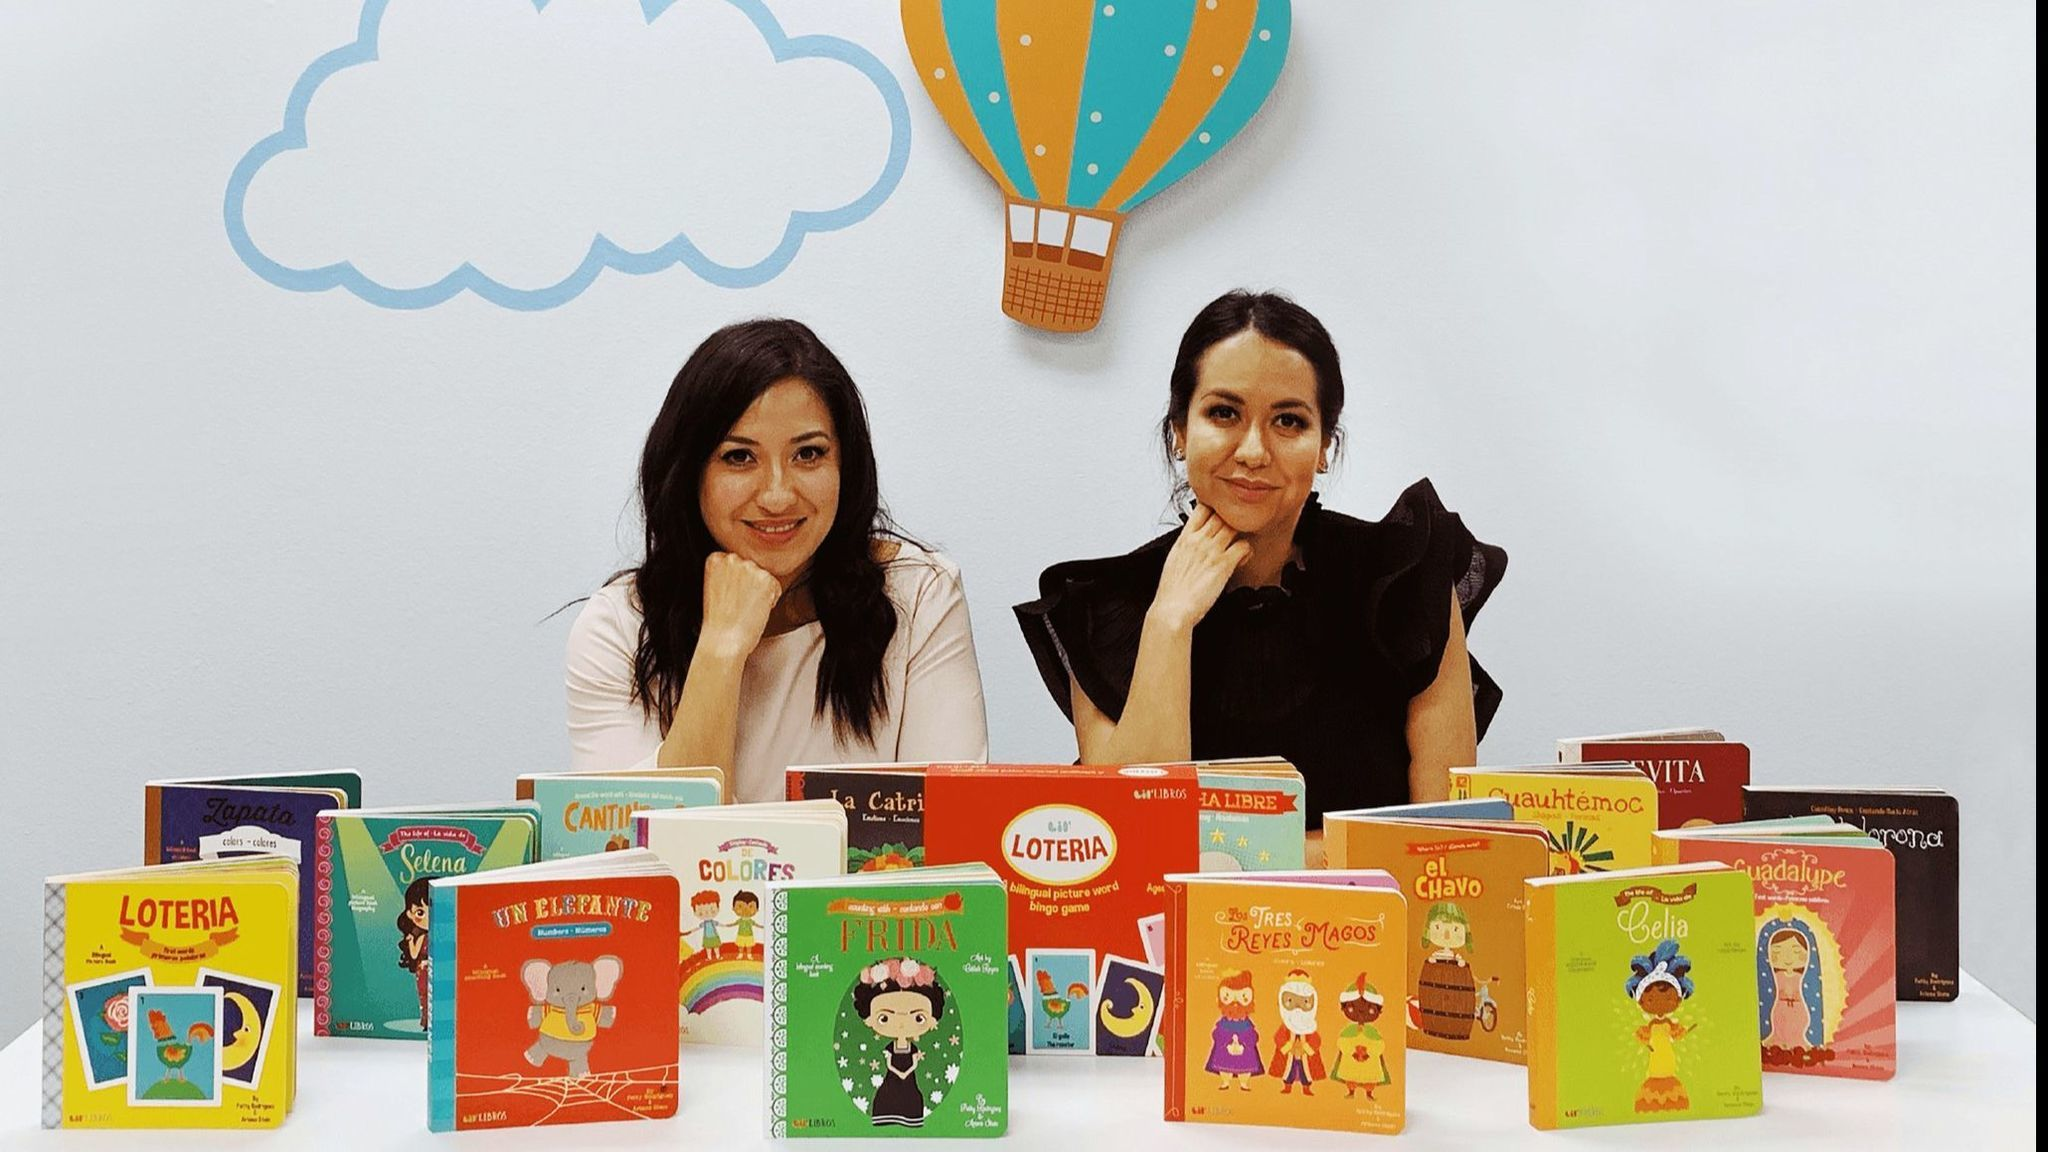 These moms couldn't find bilingual books. So they started a publishing company